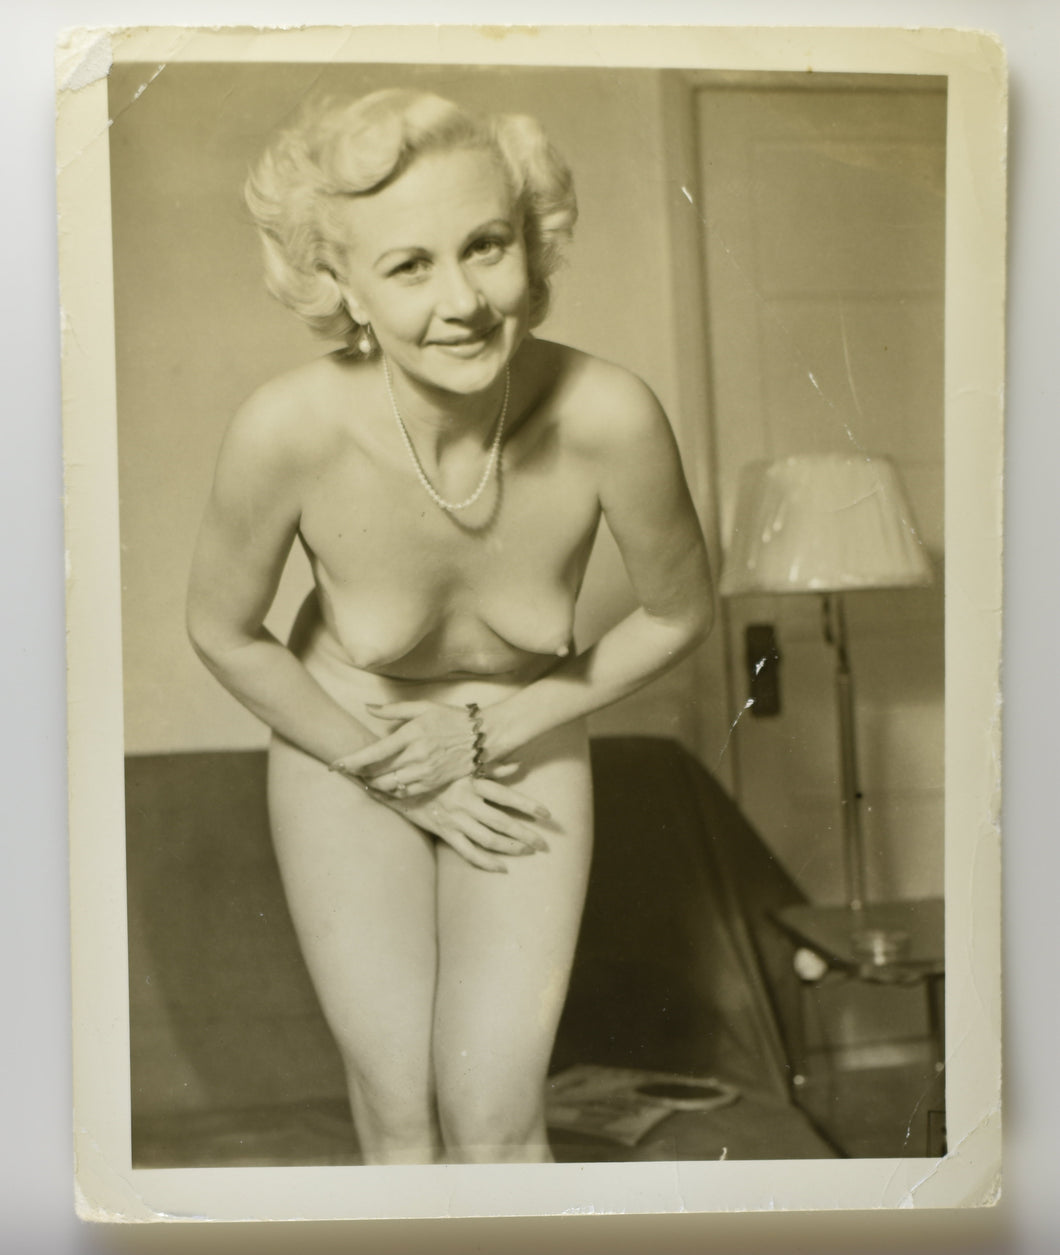 Original Photo Risqué Pinup Vintage Female Nude [RTR−F00202 ]